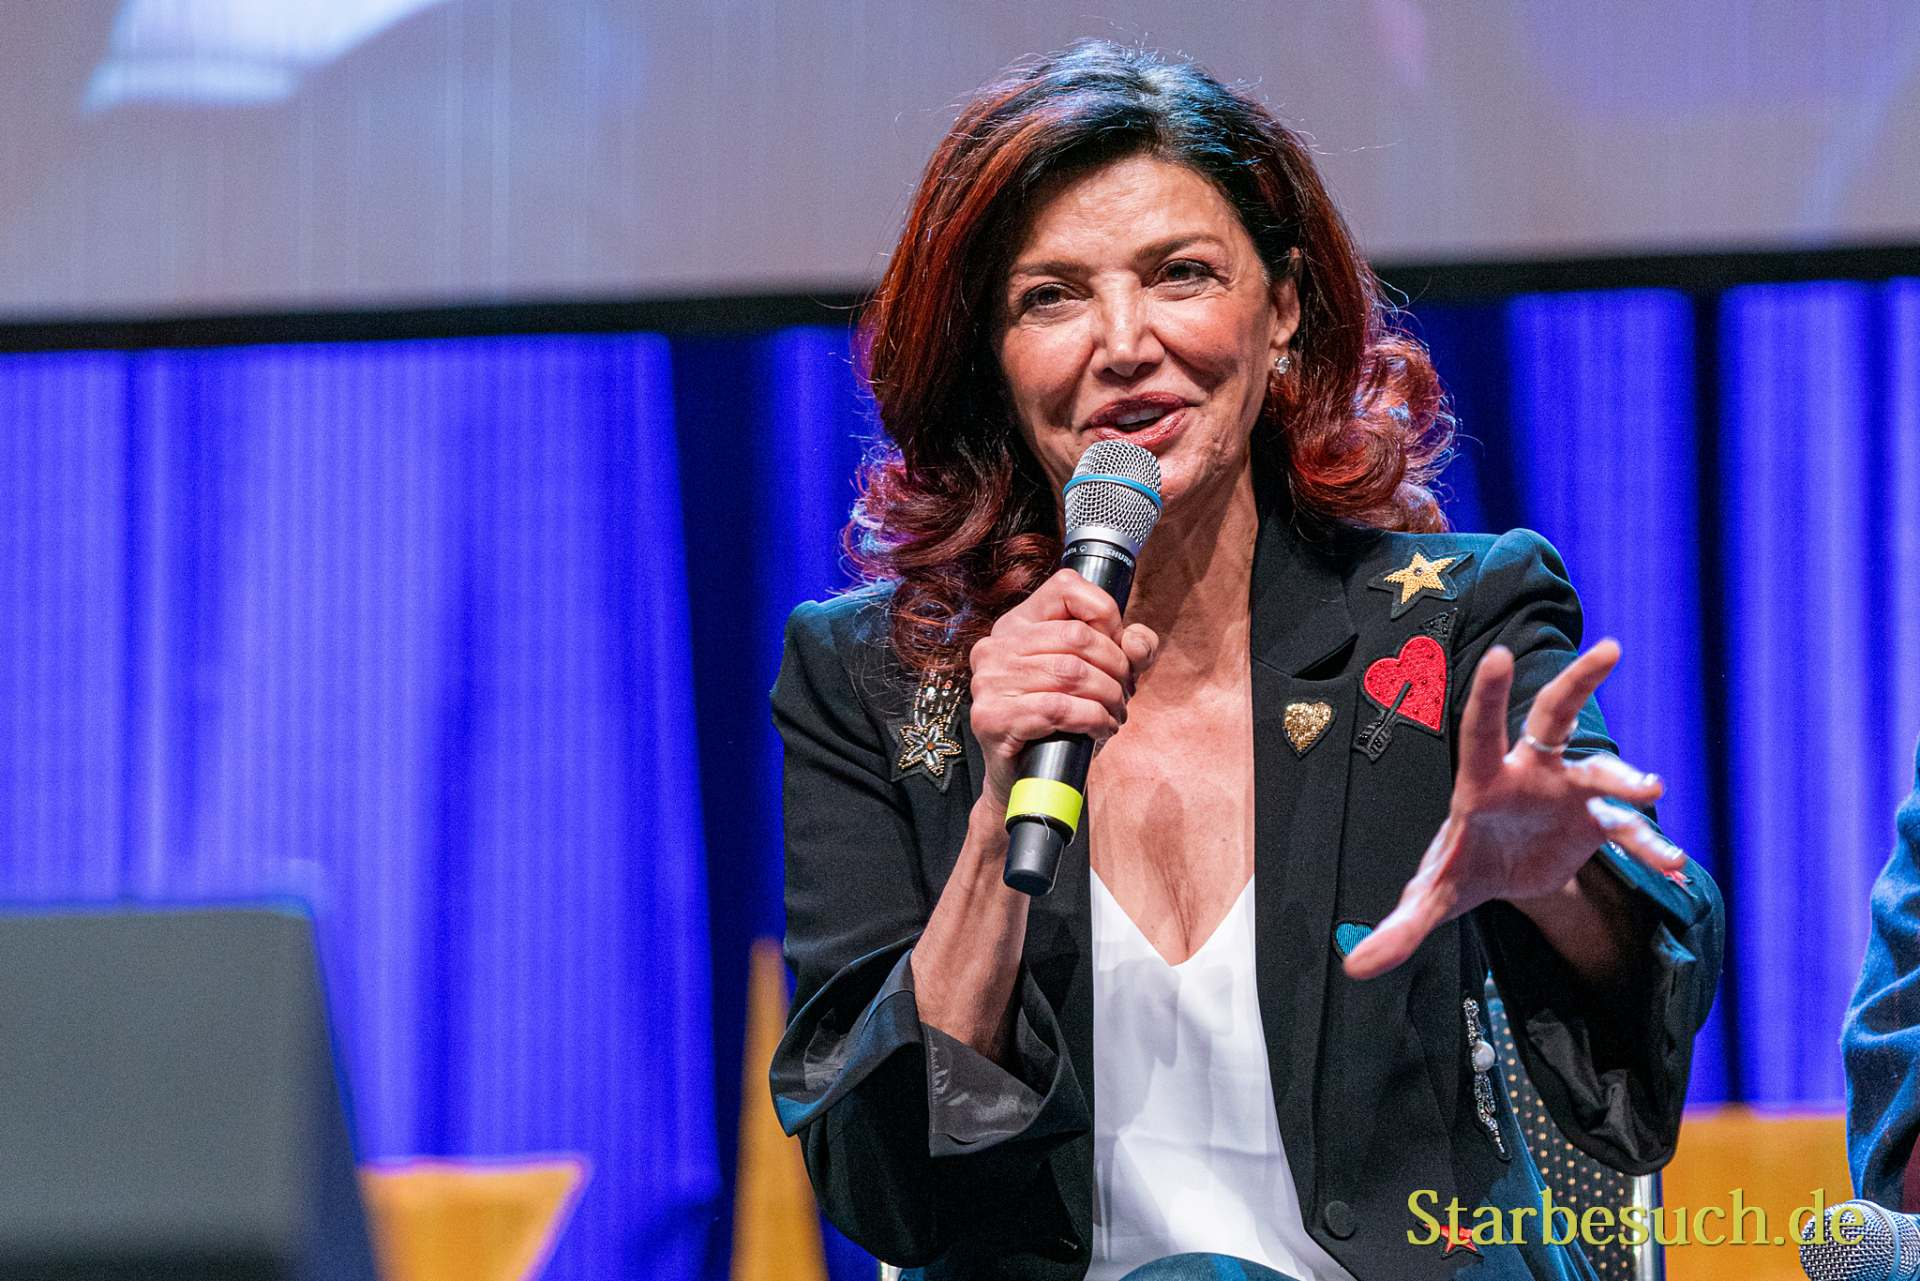 Bonn, Germany - June 8 2019: Shohreh Aghdashloo (*1952, American actress, born in Iran - The Expanse) at FedCon 28, a four day sci-fi convention. FedCon 28 took place Jun 7-10 2019.